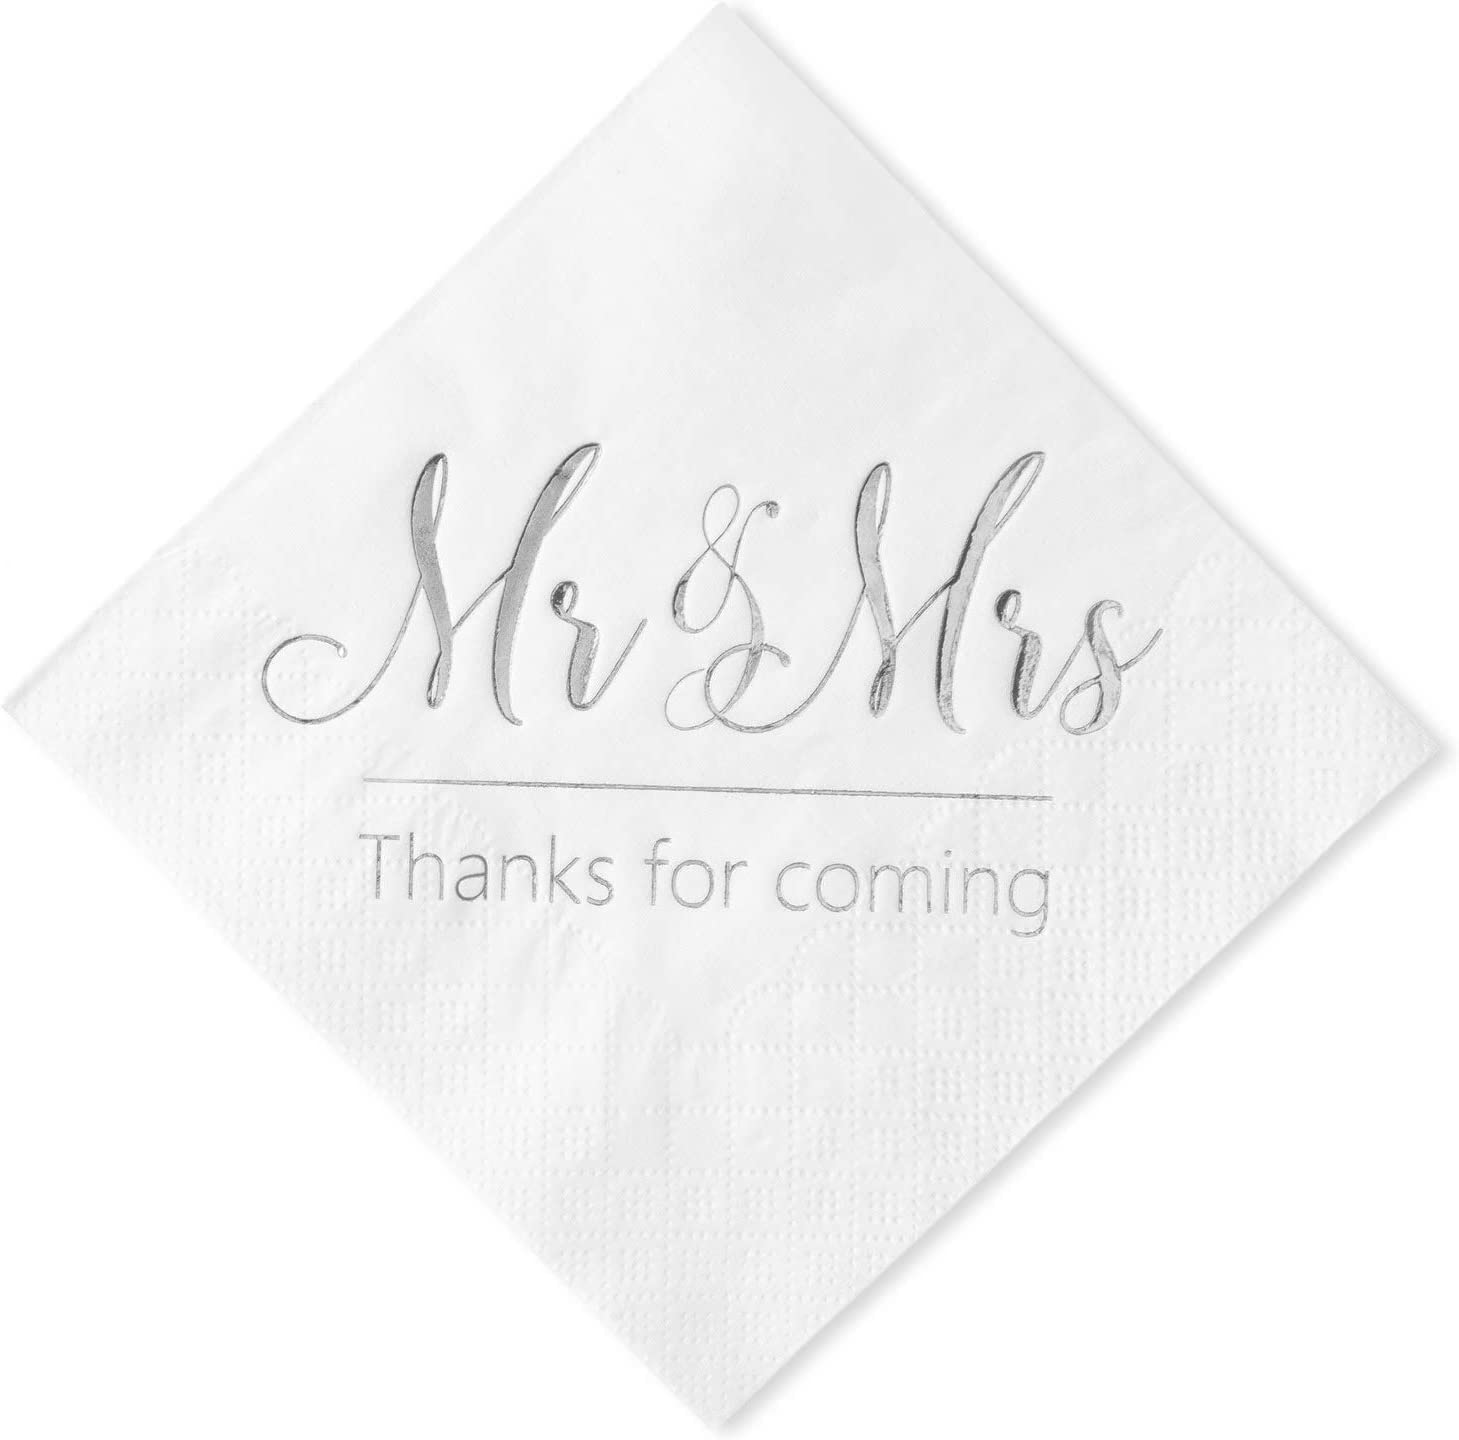 Crisky Wedding Napkins Mr Mrs Silver Cocktail Beverage Dessert Napkins for Wedding Tabel Decoration Engagement Party Supplies, 100 Pcs, 3-Ply